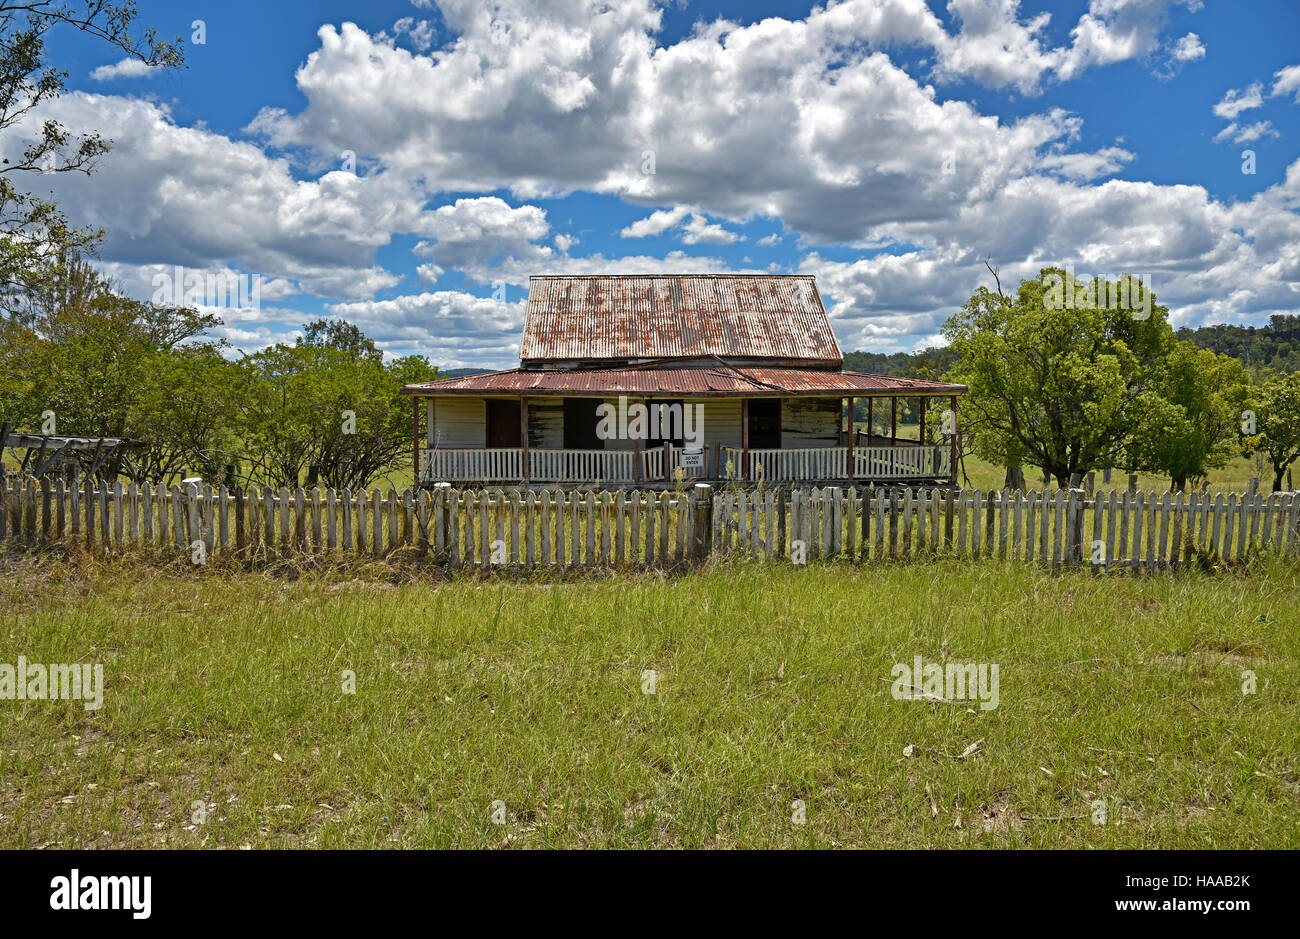 derelict australian outback farm house on the old grafton road between HAAB2K - 38+ Australian Farm House Images  Pictures